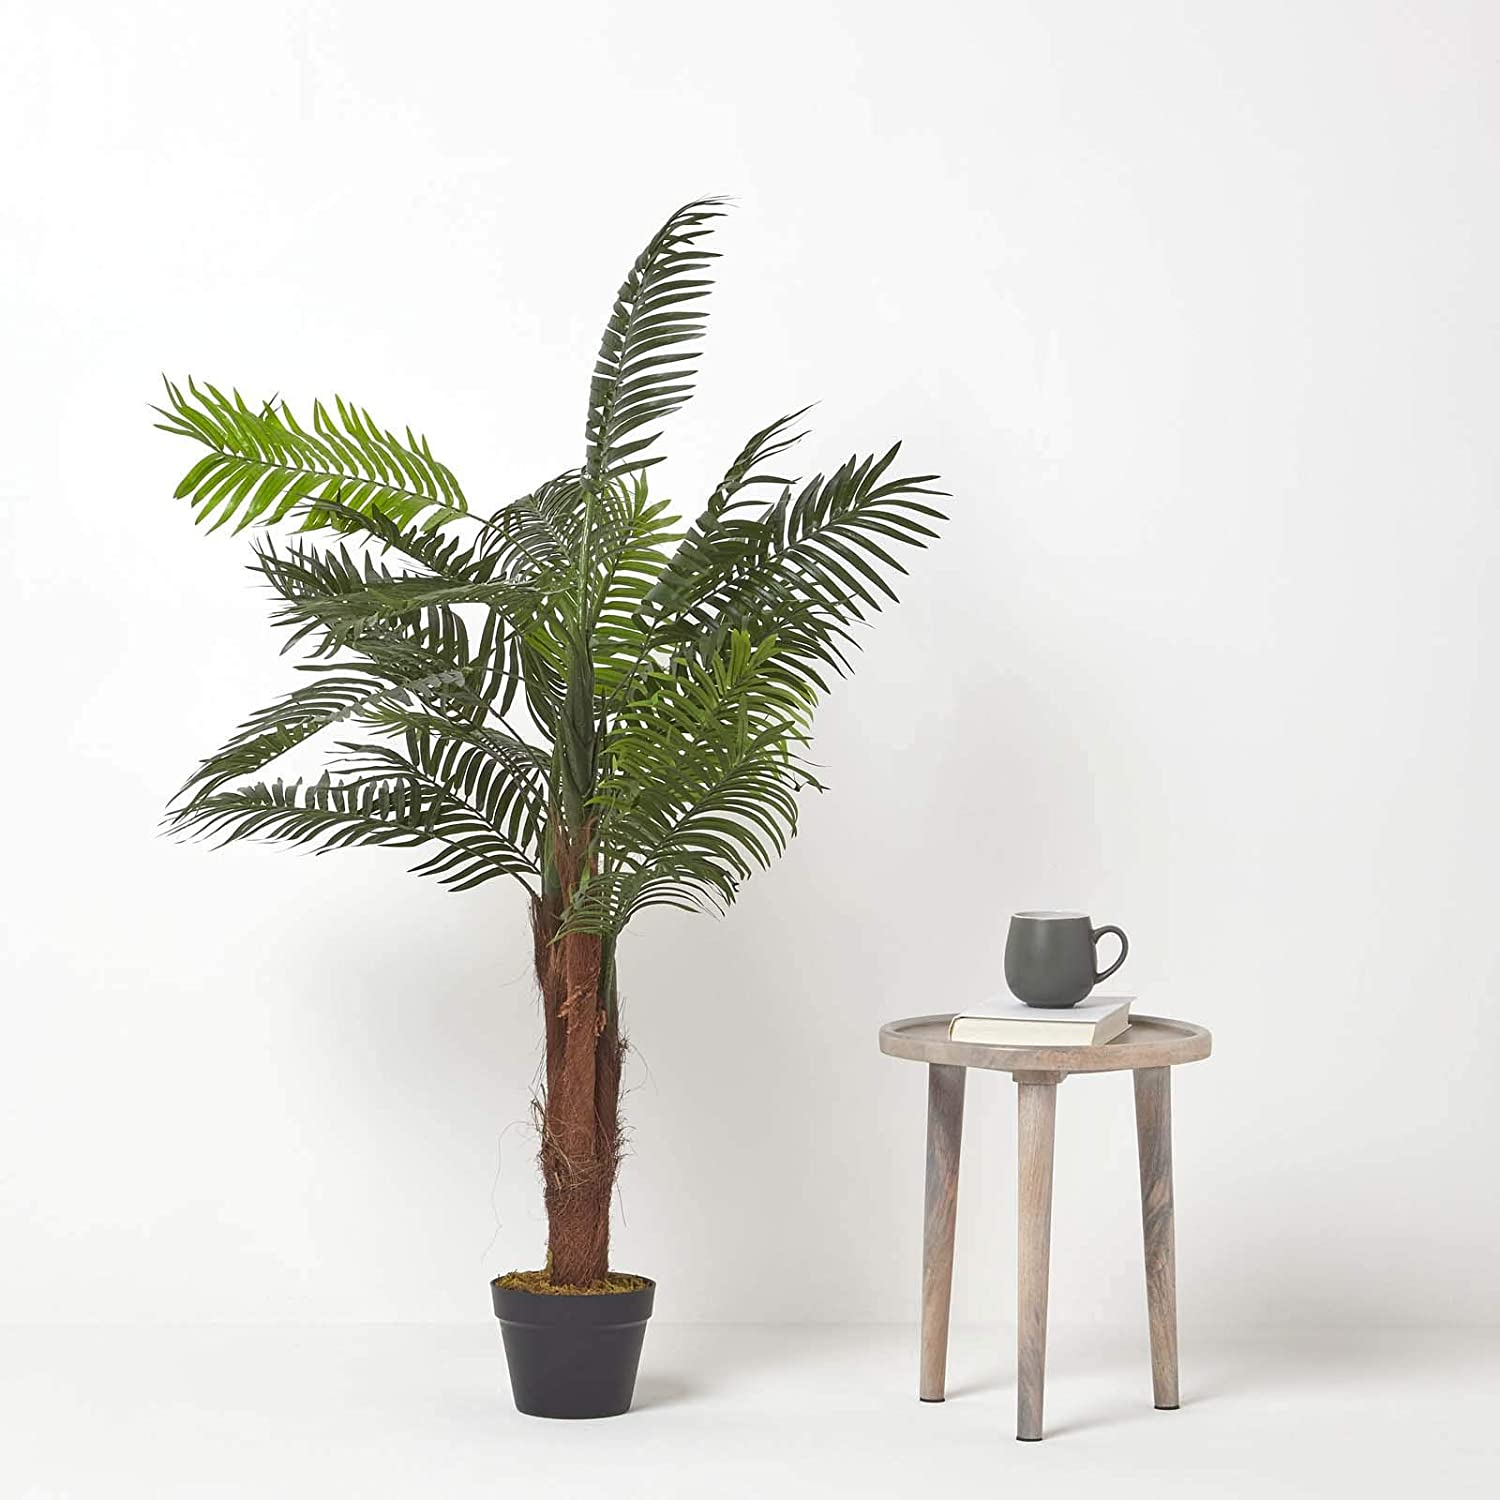 HOMESCAPES Artificial Mini Palm Tree Tropical Office Conservatory Indoor Plant Green 120cm// 4 ft with Black Pot